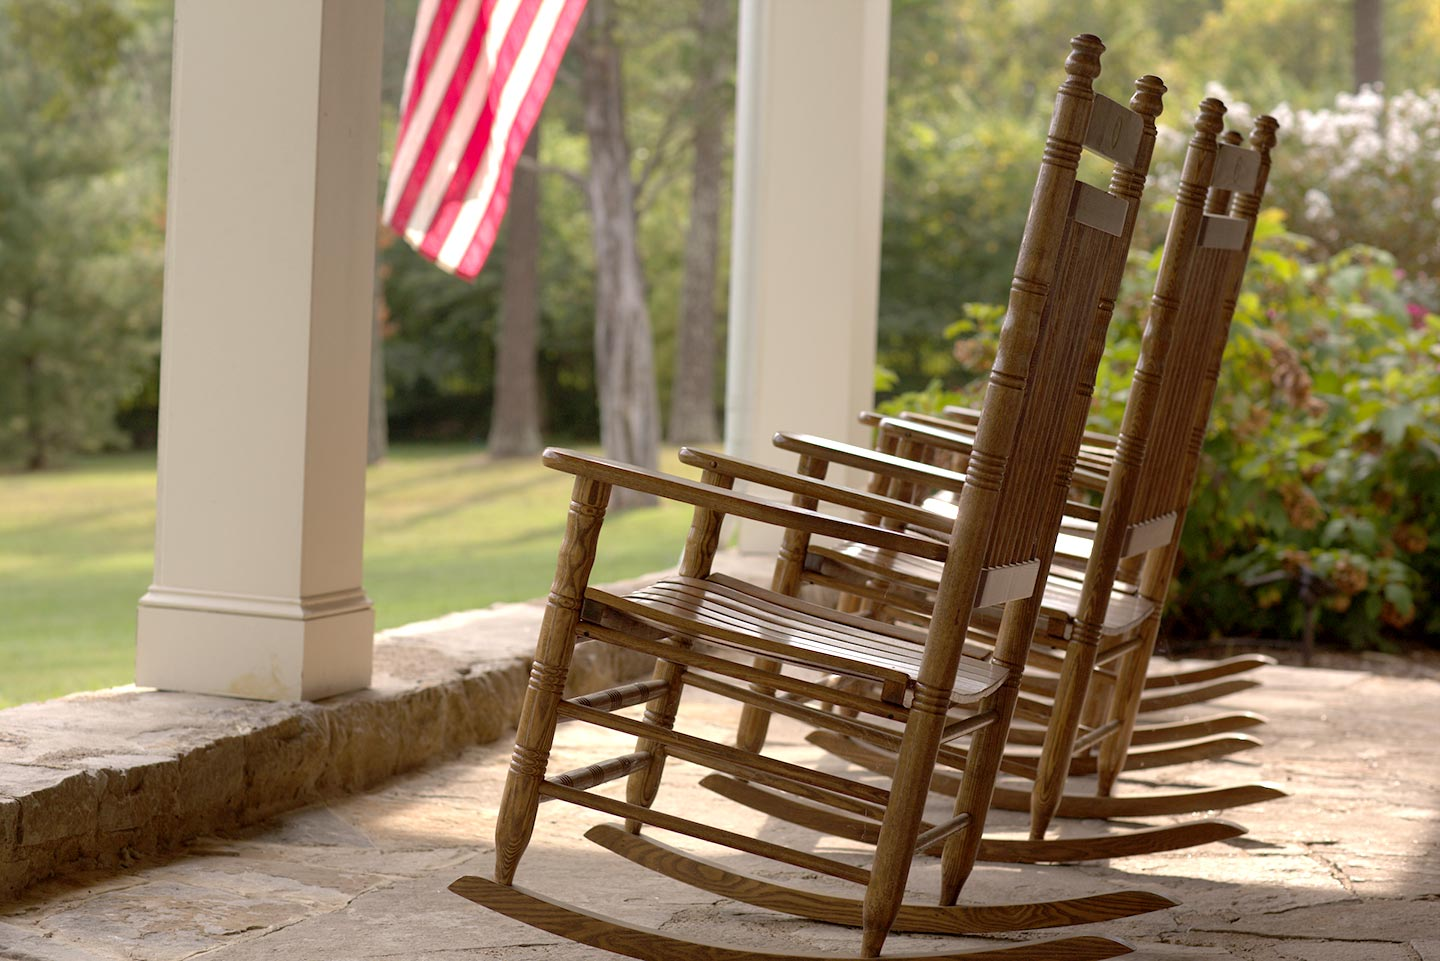 The Relaxing Lull Of A Rocking Chair Takes You Back To Simpler Times Of  Sipping Sweet Tea And Enjoying Every Little Thing With Friends And Family.